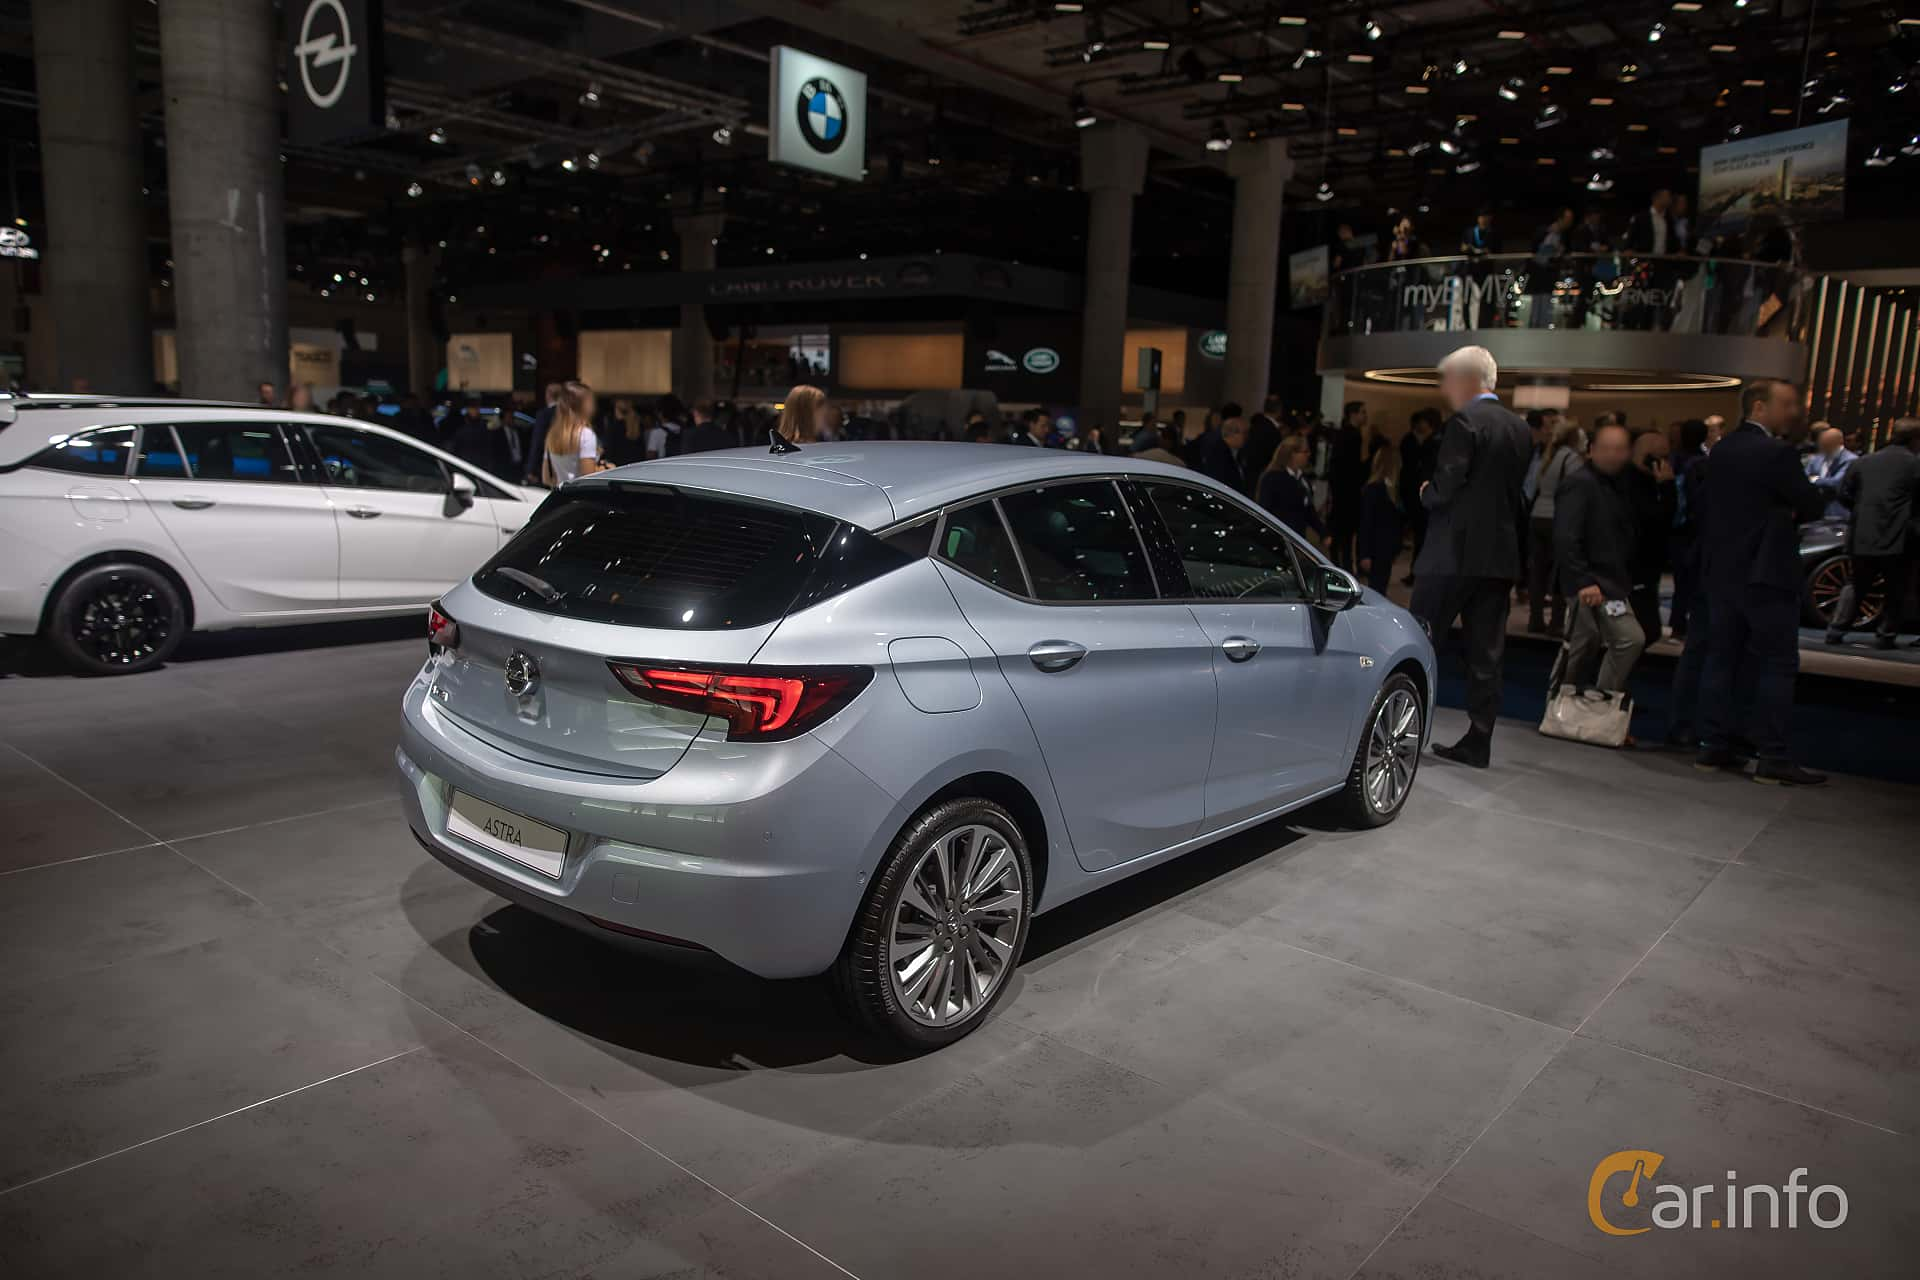 Opel Astra 1.2 Turbo Manual, 130hp, 2020 at IAA 2019